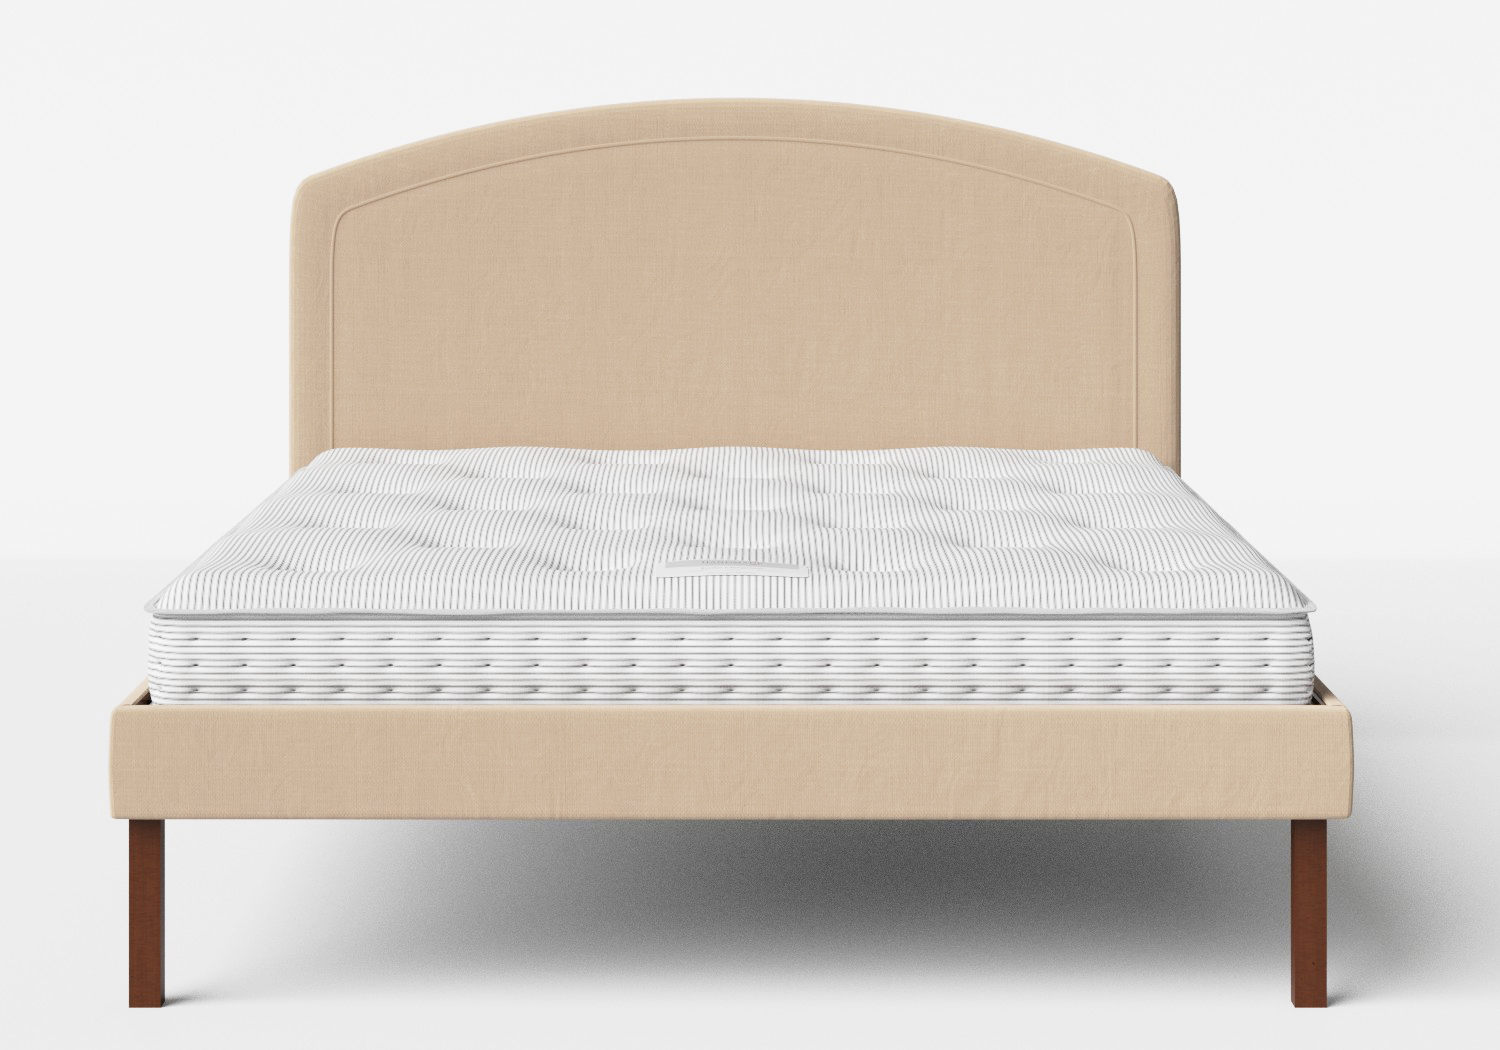 Okawa Upholstered Bed in Natural fabric shown with Juno 1 mattress